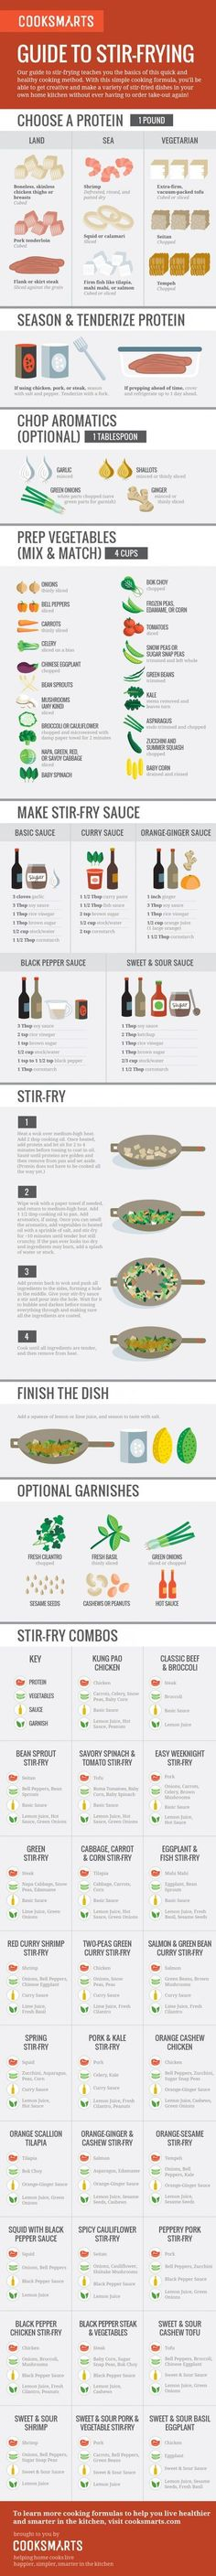 Whether you're a master of the wok or just a lover of stir-fry, this ultimate cheat sheet from Cook Smarts will remove takeout from your weekly dinner options. Quick, healthy, and mouthwatering, stir-fry recipes luckily aren't difficult to tackle, but the right techniques and ingredients can take your dish to the next level. This handy infographic guides you every step of the way, from tenderizing and preparing sauces, to throwing it all together in the wok.